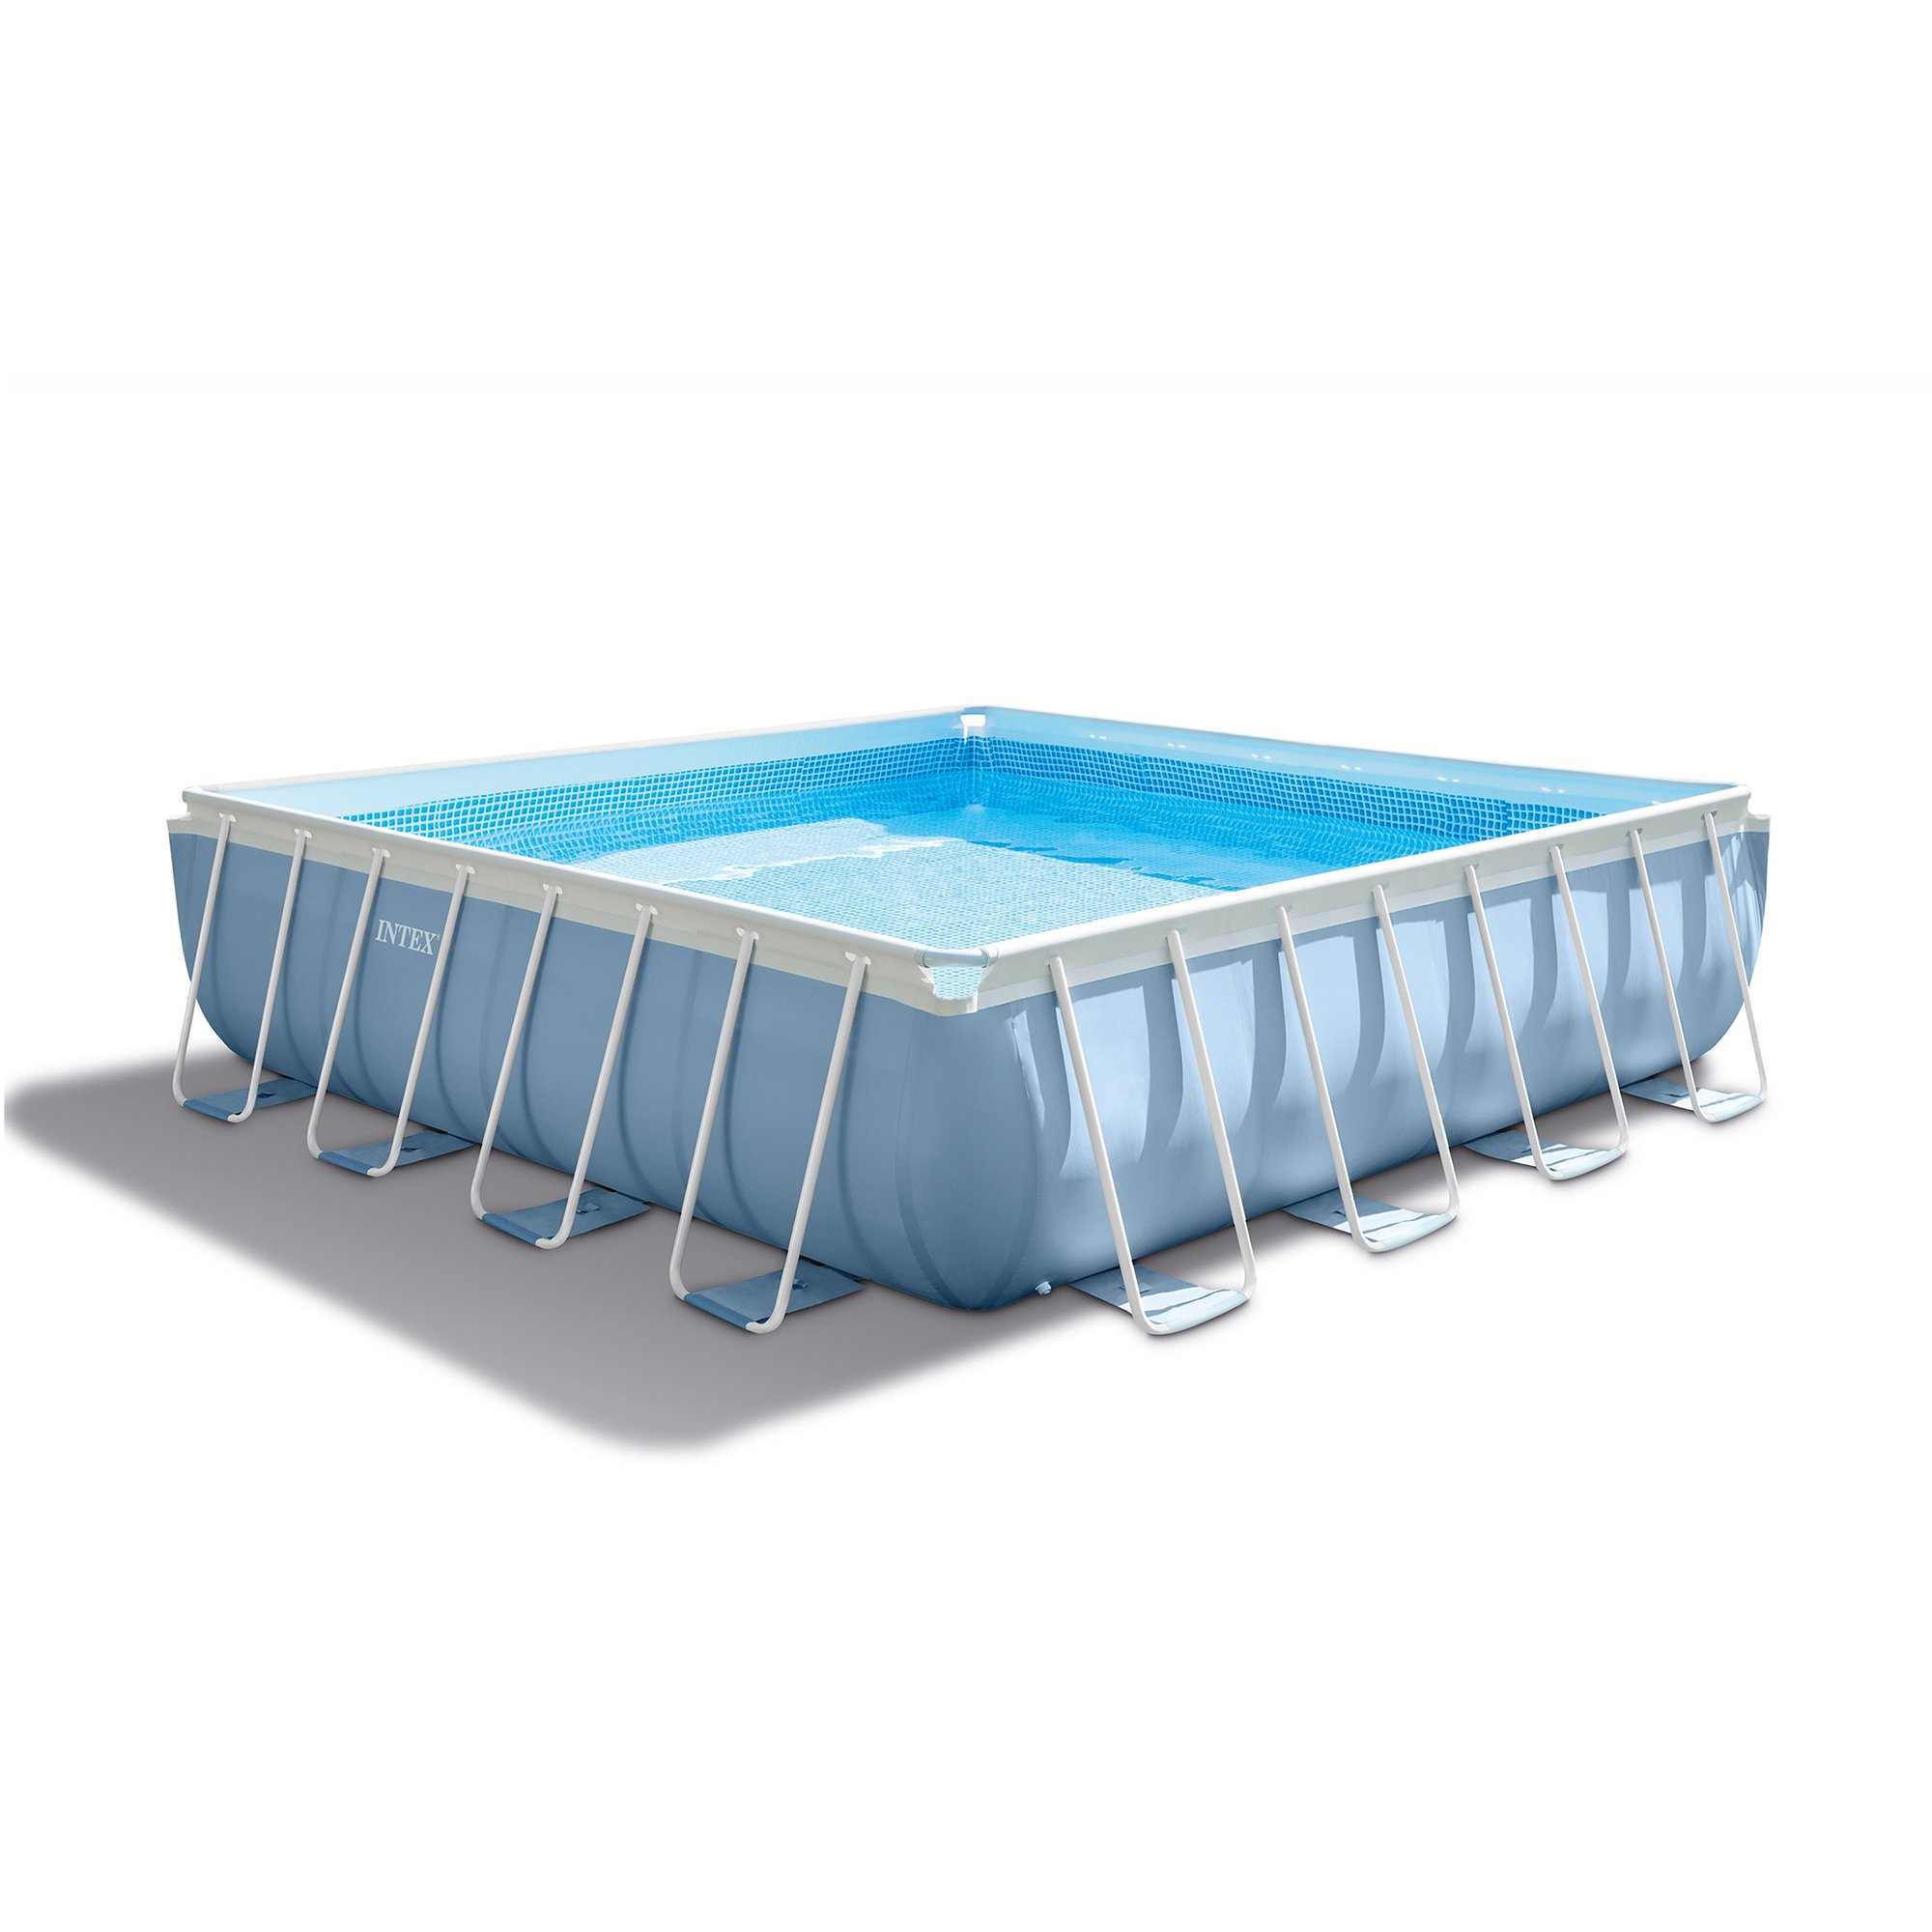 intex 16 39 x 48 prism xl frame square above ground pool set with filter pump ebay. Black Bedroom Furniture Sets. Home Design Ideas